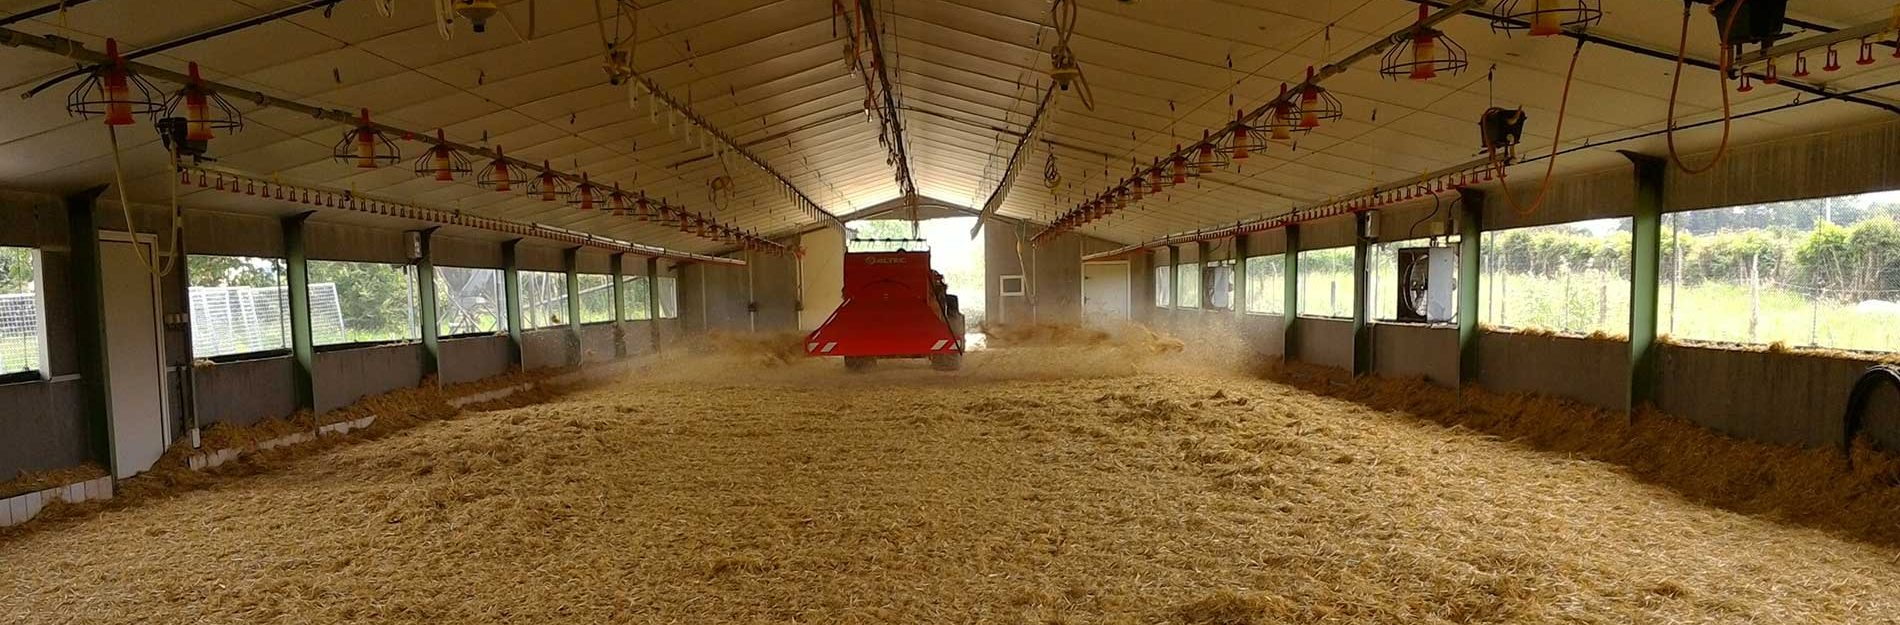 Poultry Straw and Sawdust spreaders